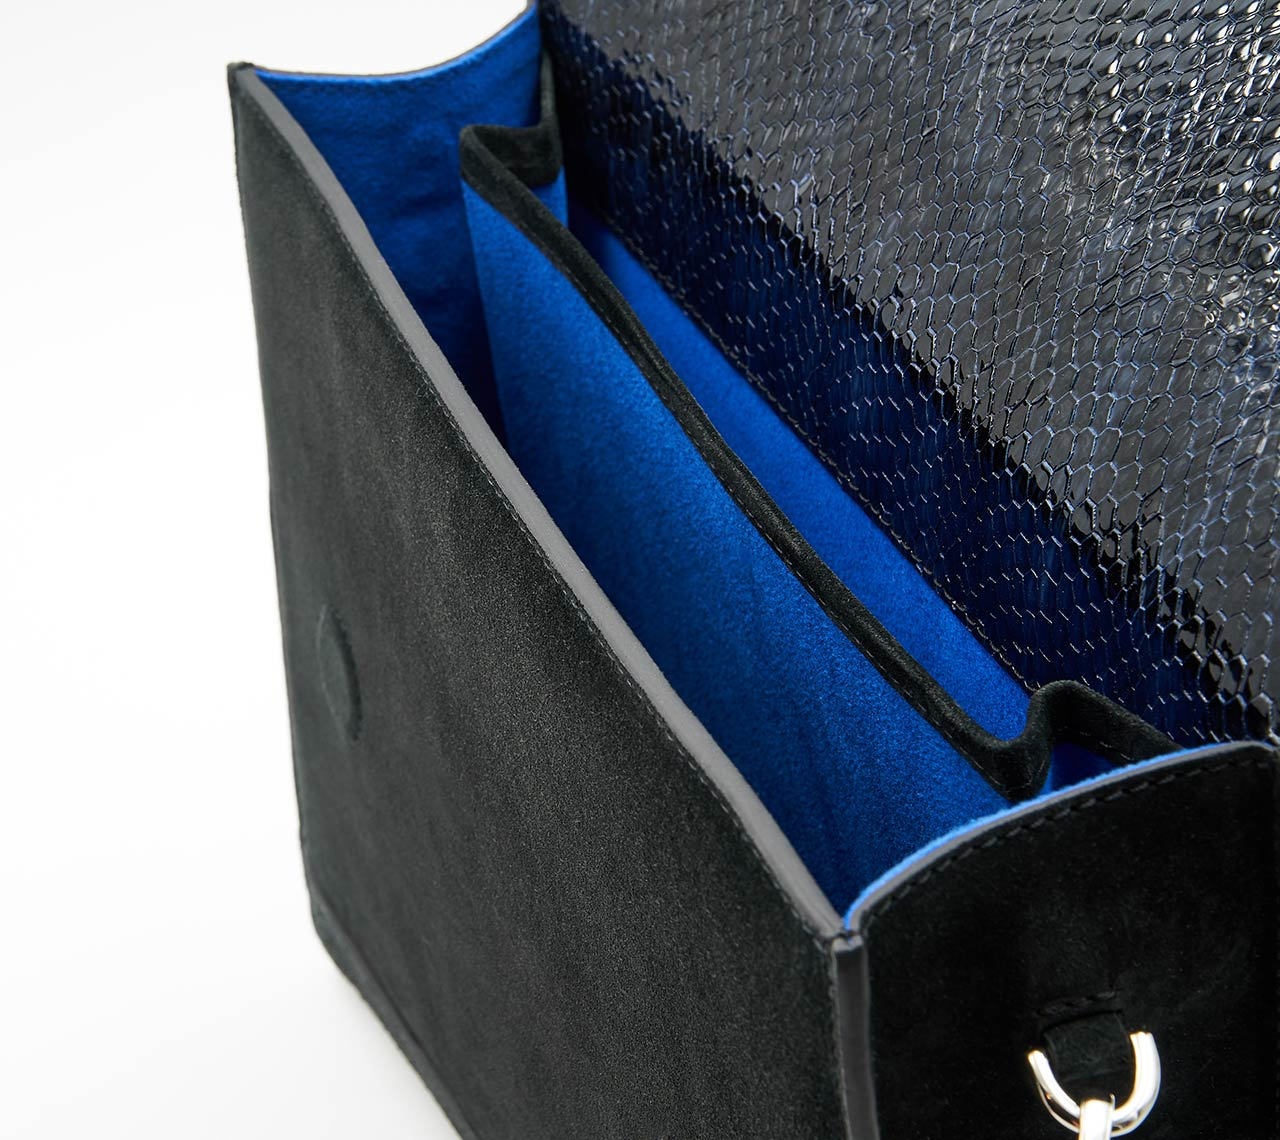 Soofre Suede Leather Clutch black midnight blue Lining